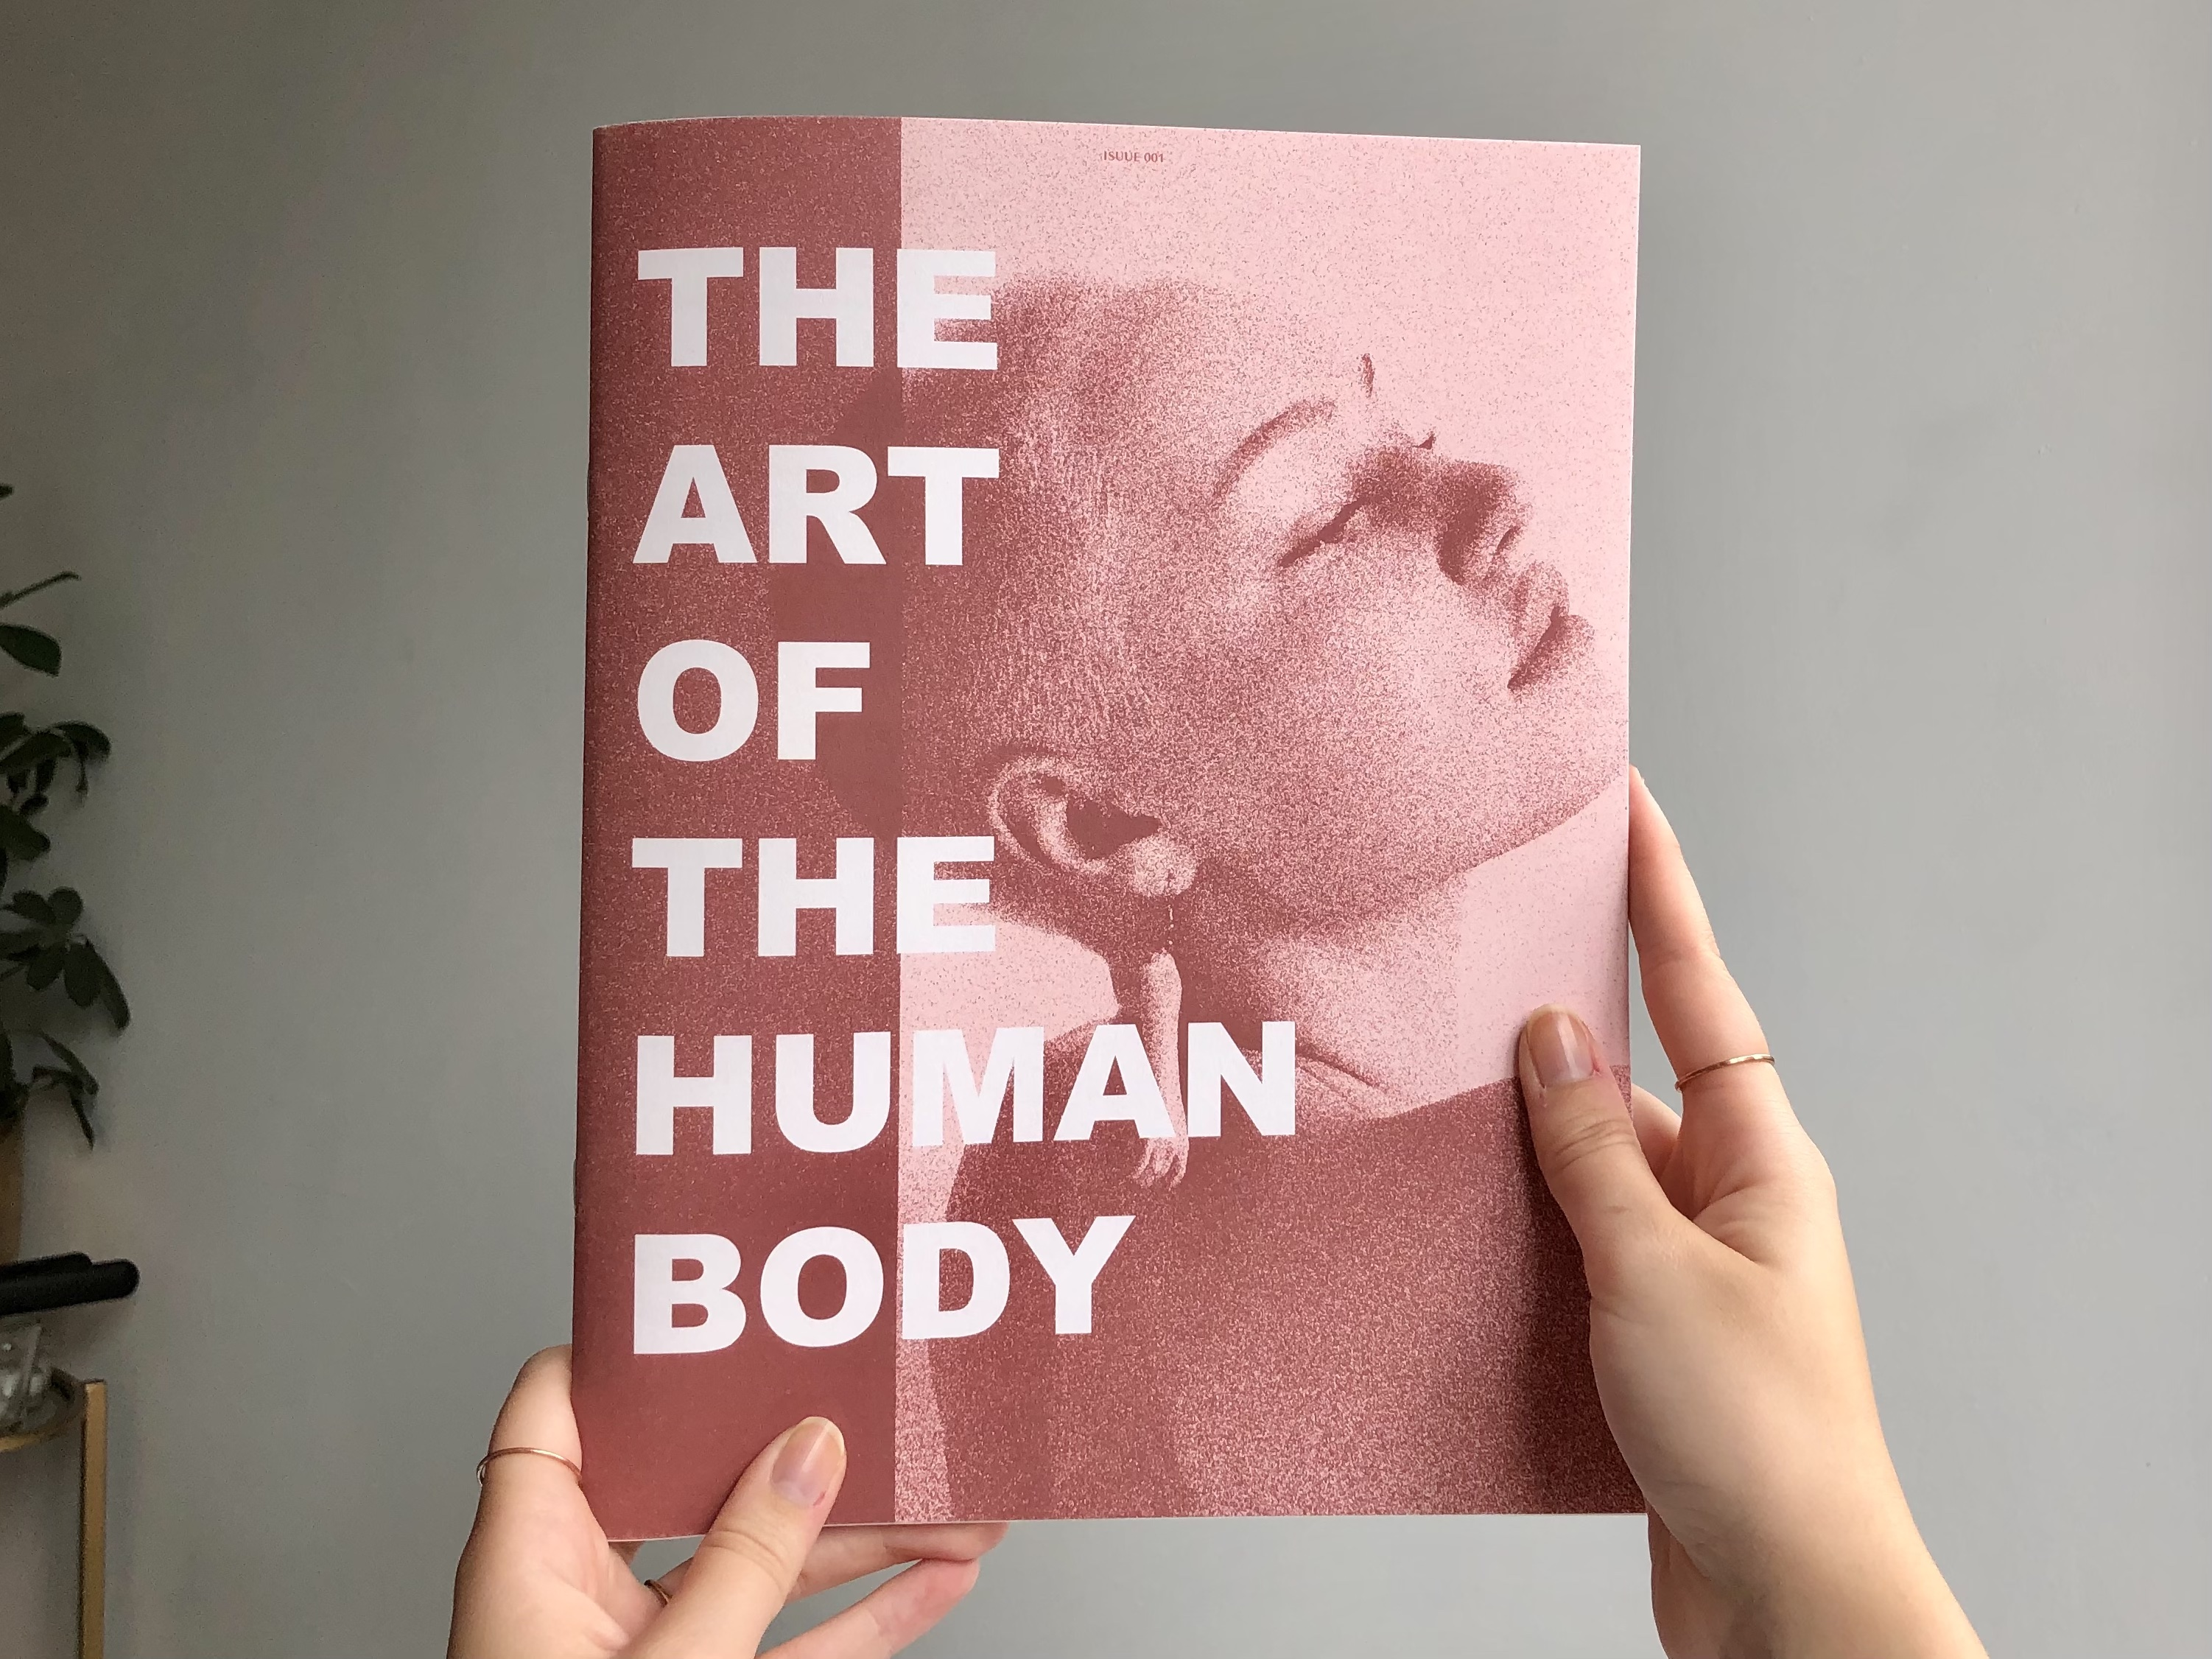 The Art of the Human Body